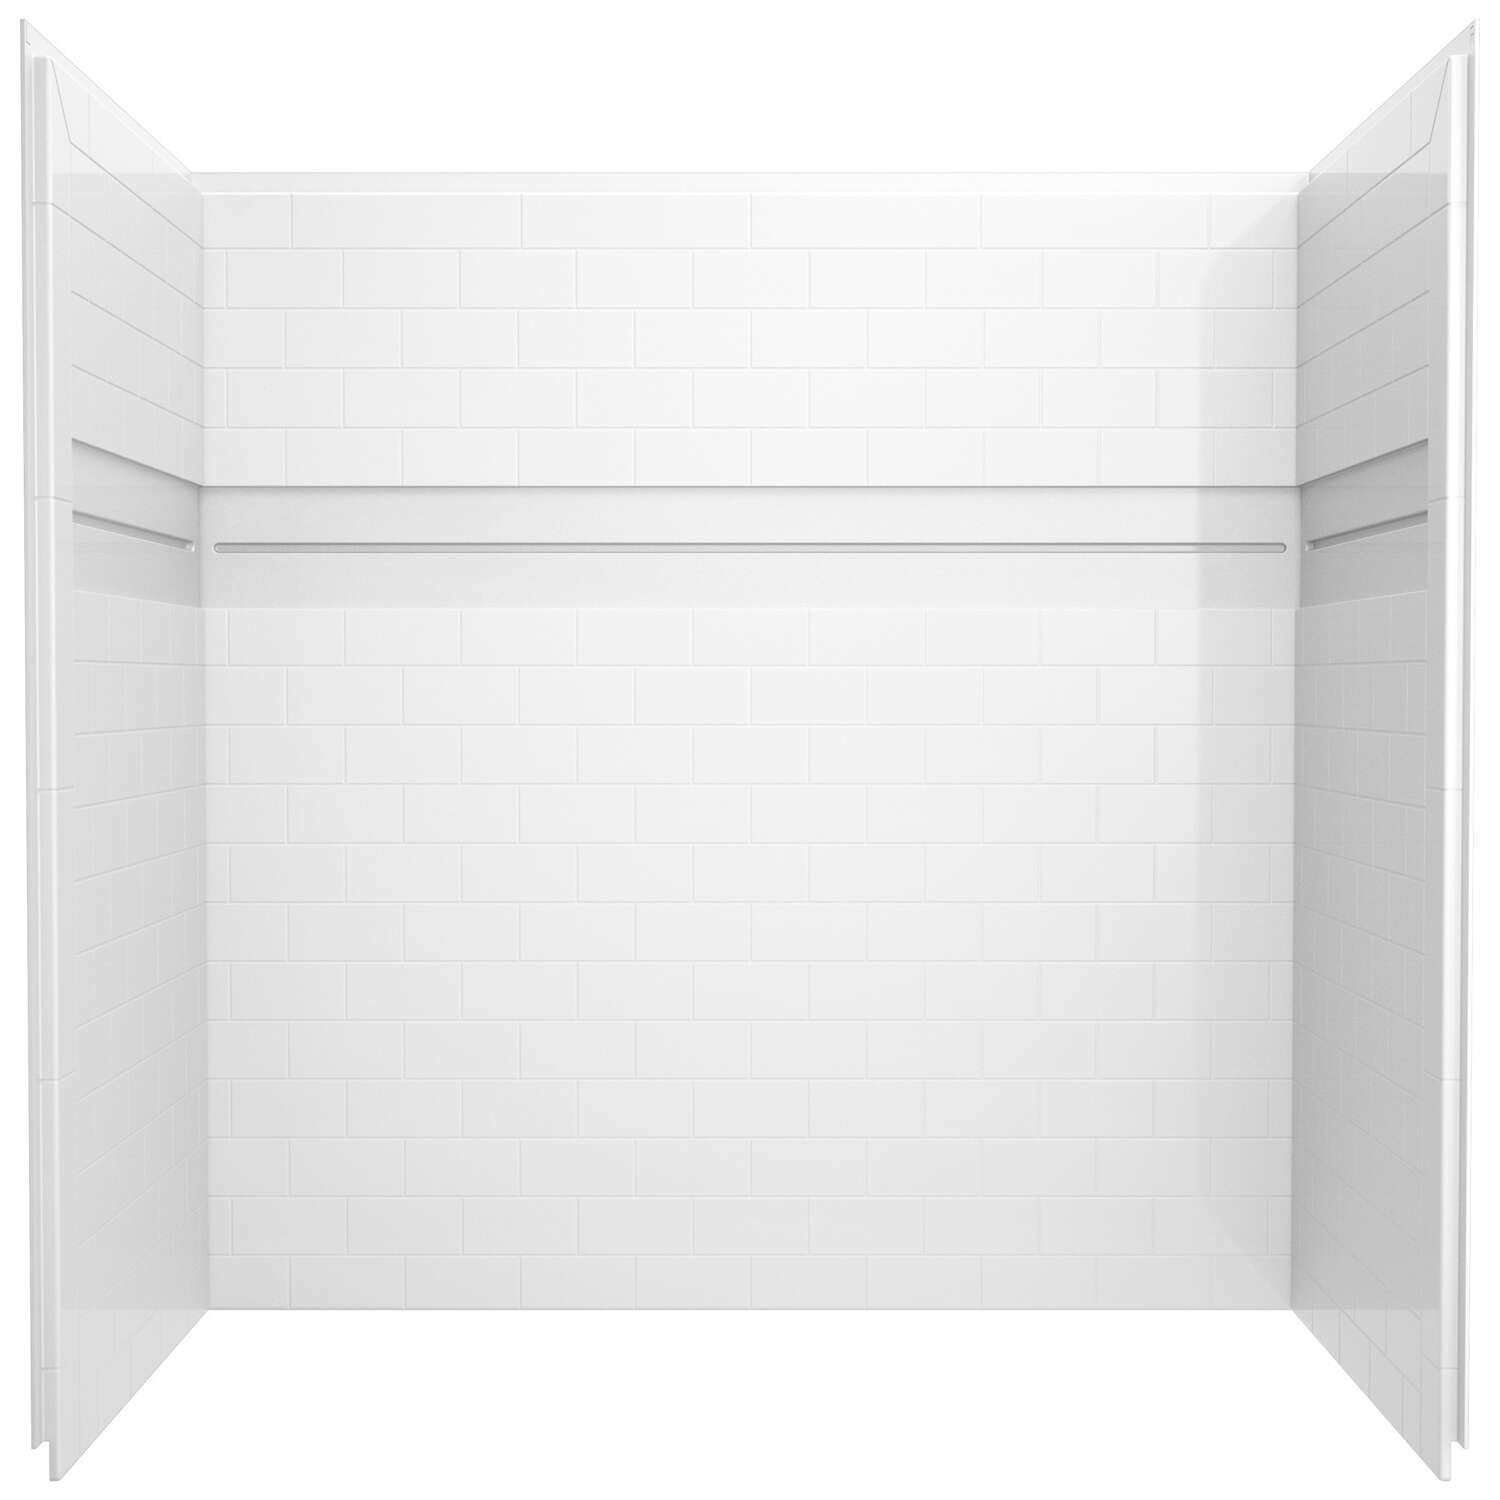 Delta  UPstile  60-7/8 in. H x 59-7/8 in. W x 32-1/8 in. L White  Bath and Shower Surround